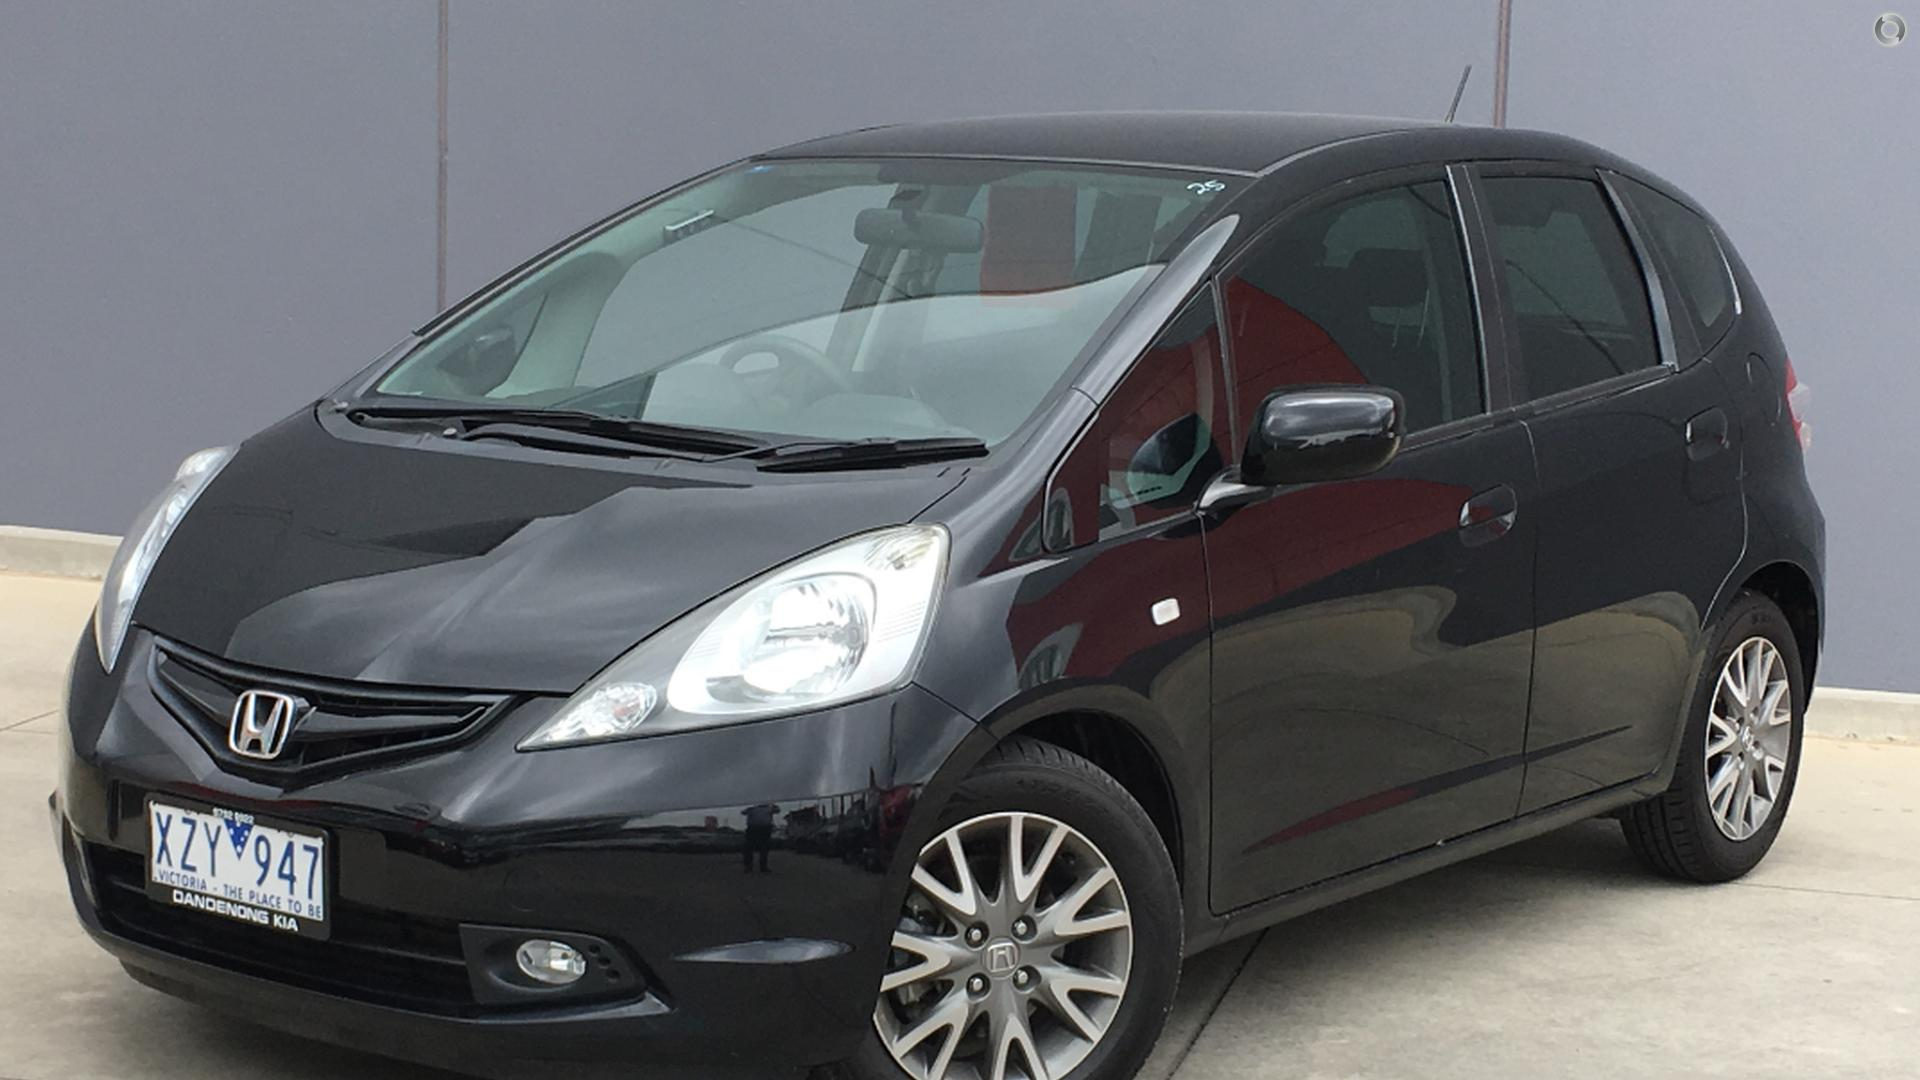 2010 Honda Jazz Vti Limited Edition